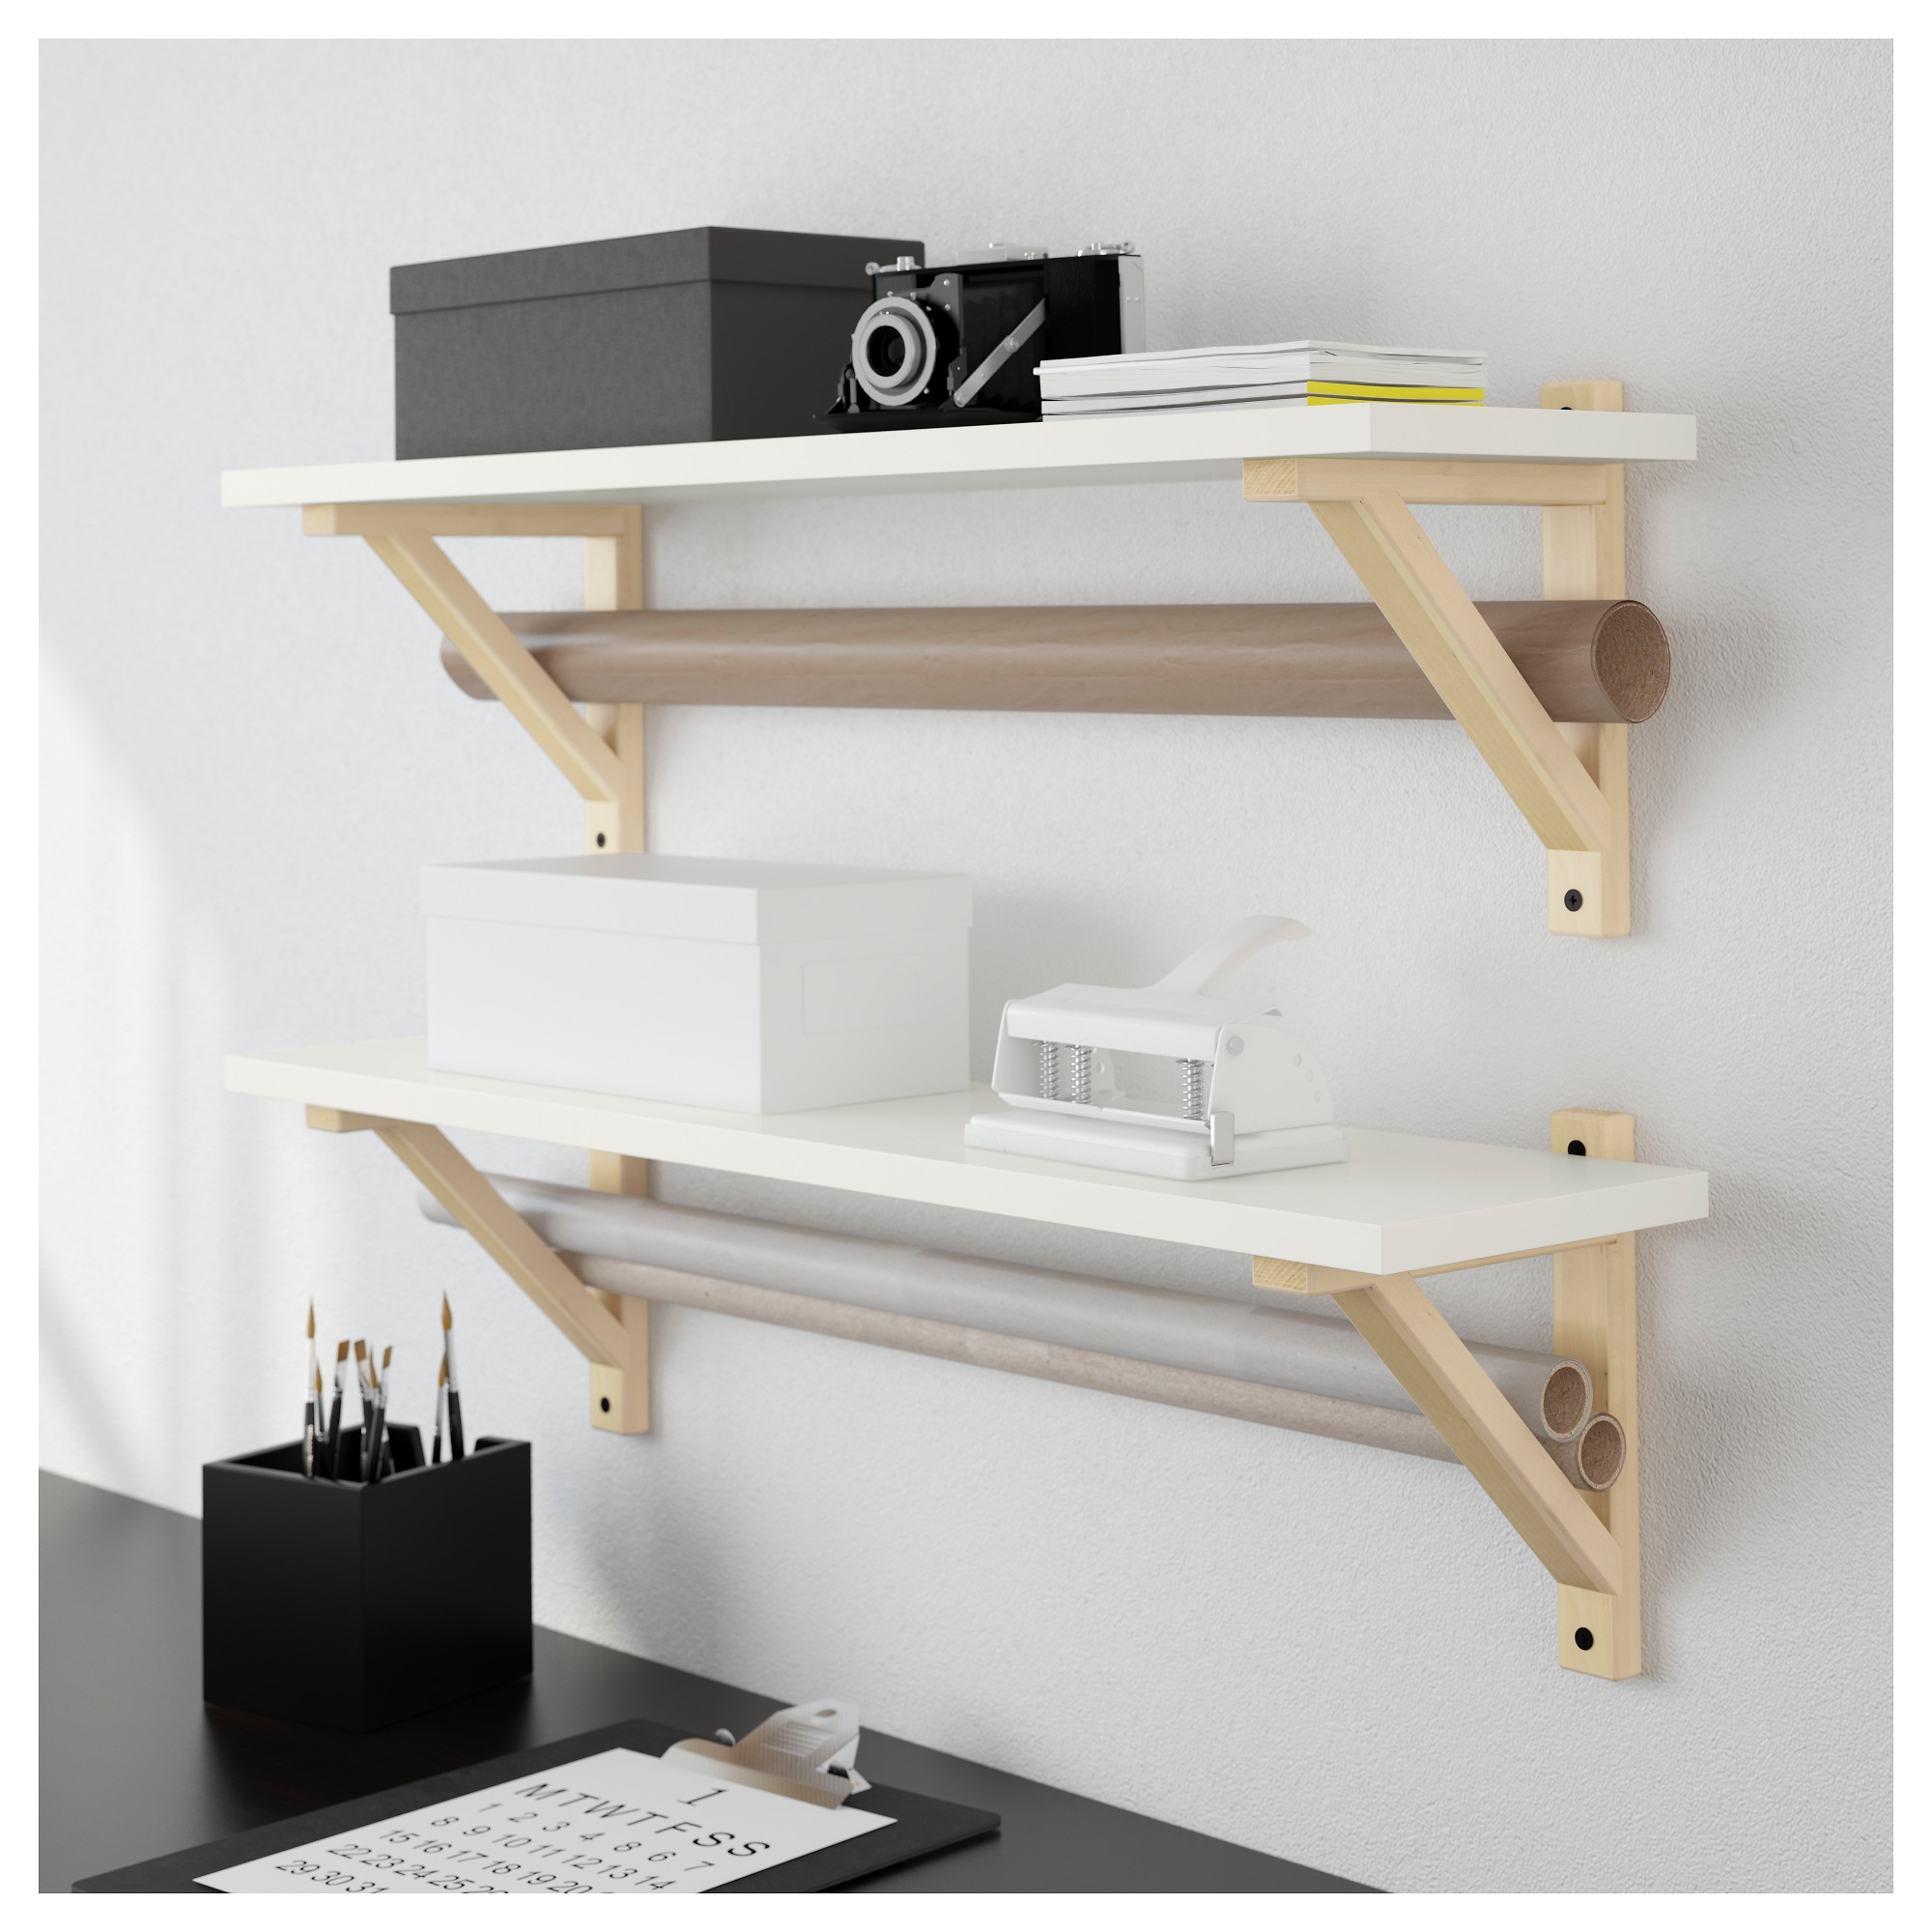 Ek Sten Ek Valter Wall Shelf Ikea In Wall Shelves (Image 6 of 15)